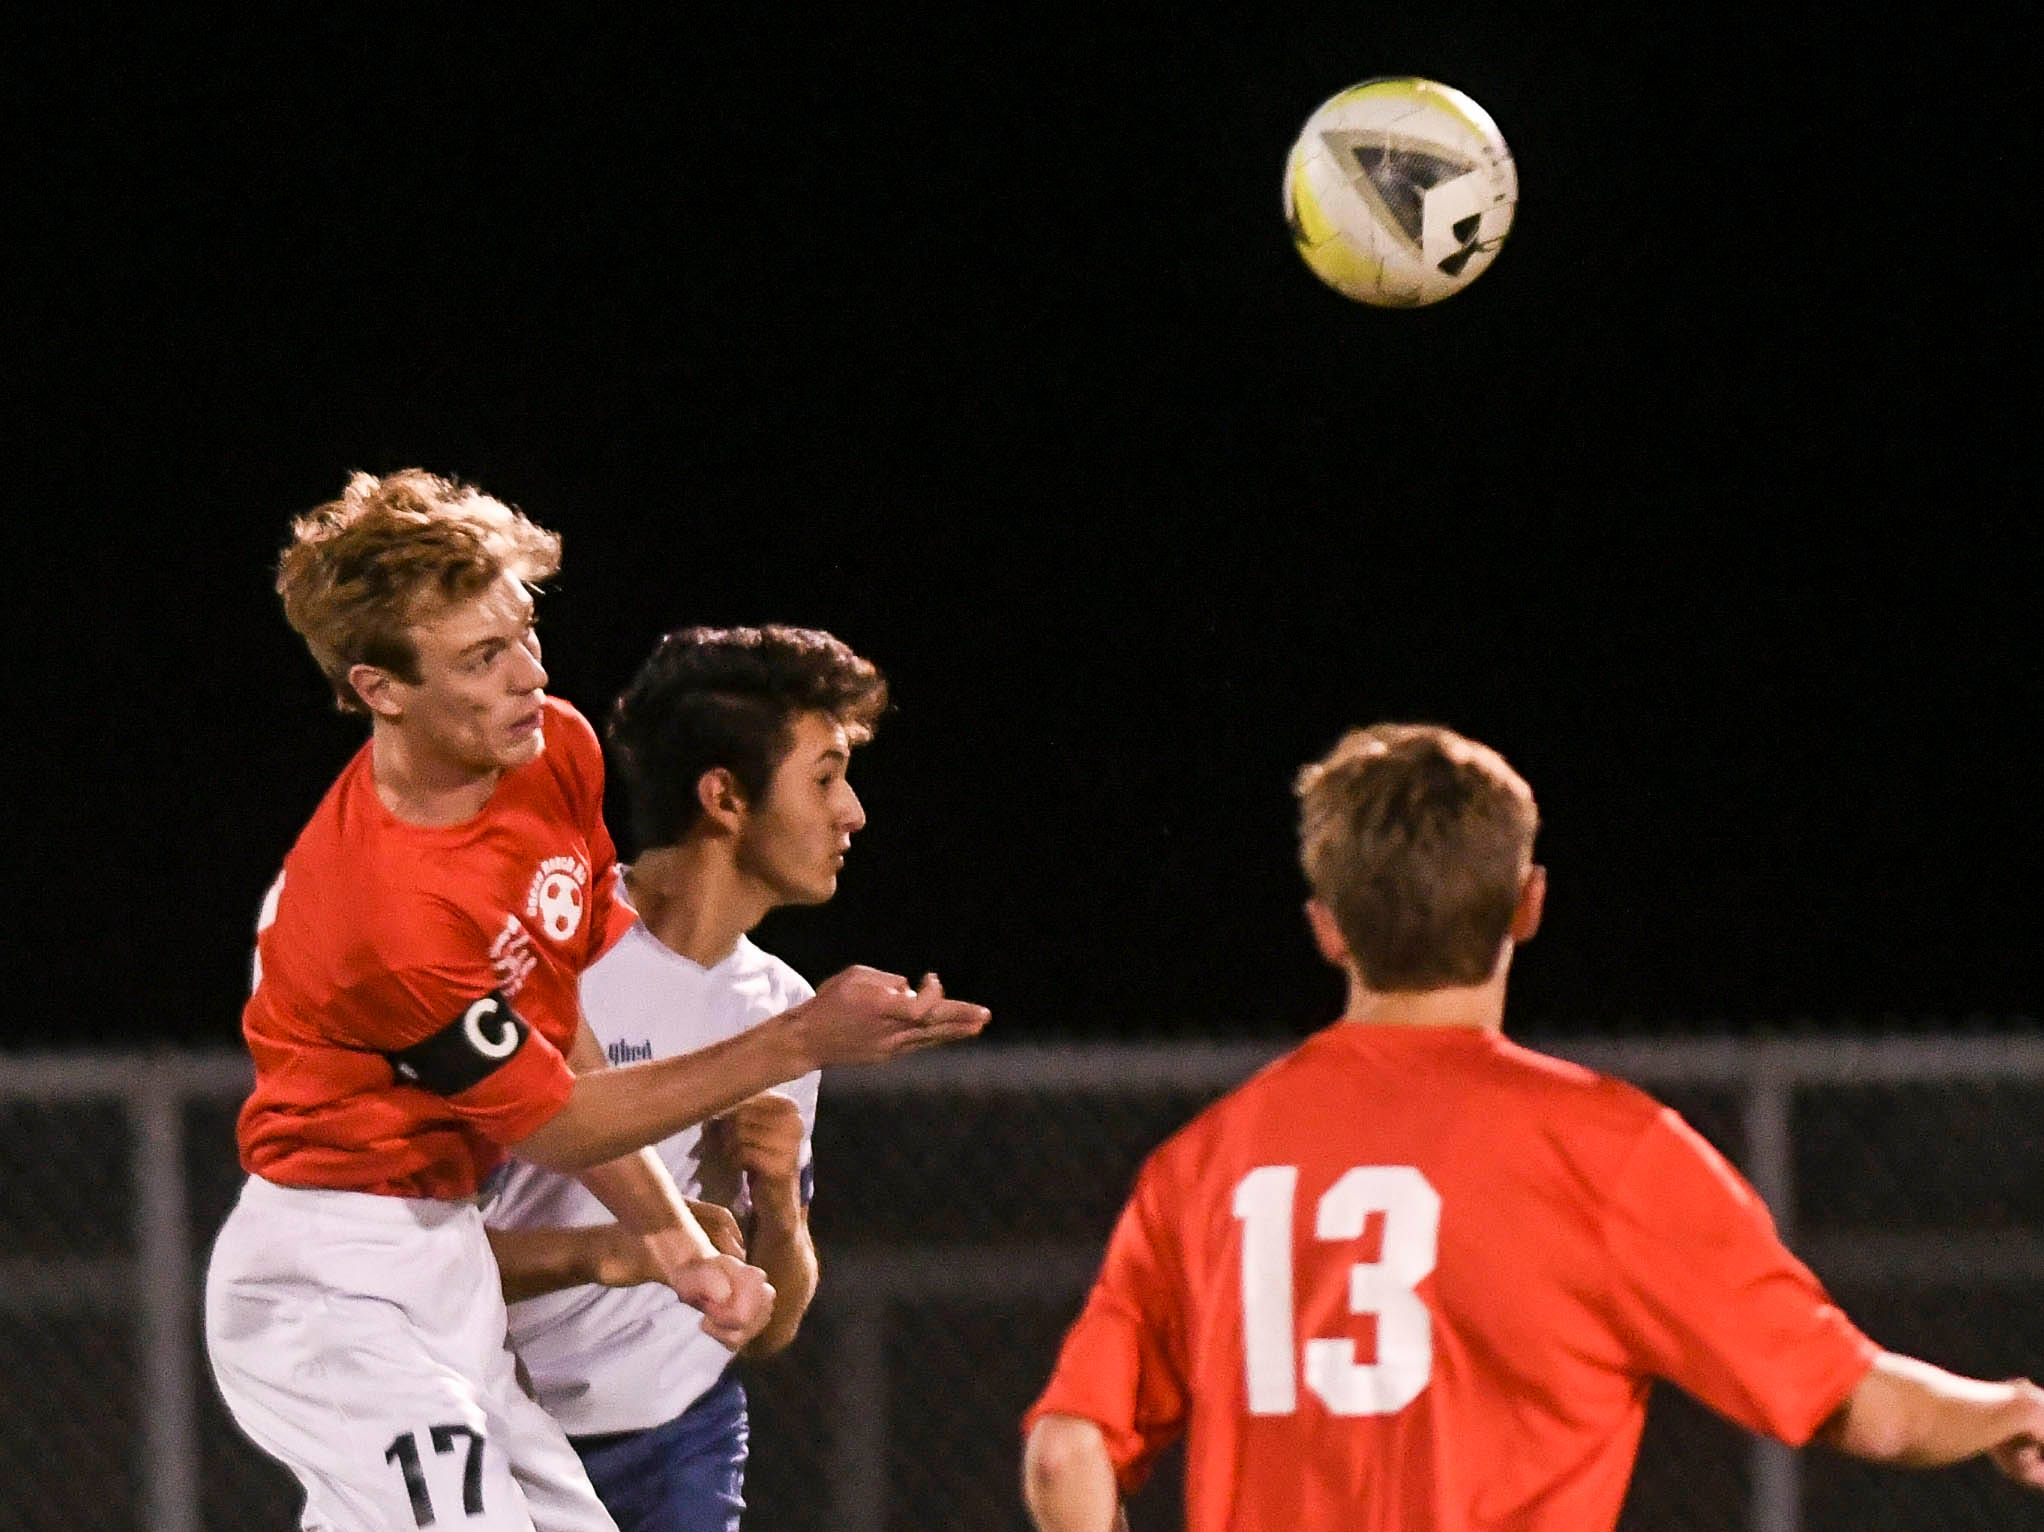 David Mundy of Cocoa Beach and Robbie DuJovne of West Shore try to head the ball during Wednesday's game in Cocoa Beach